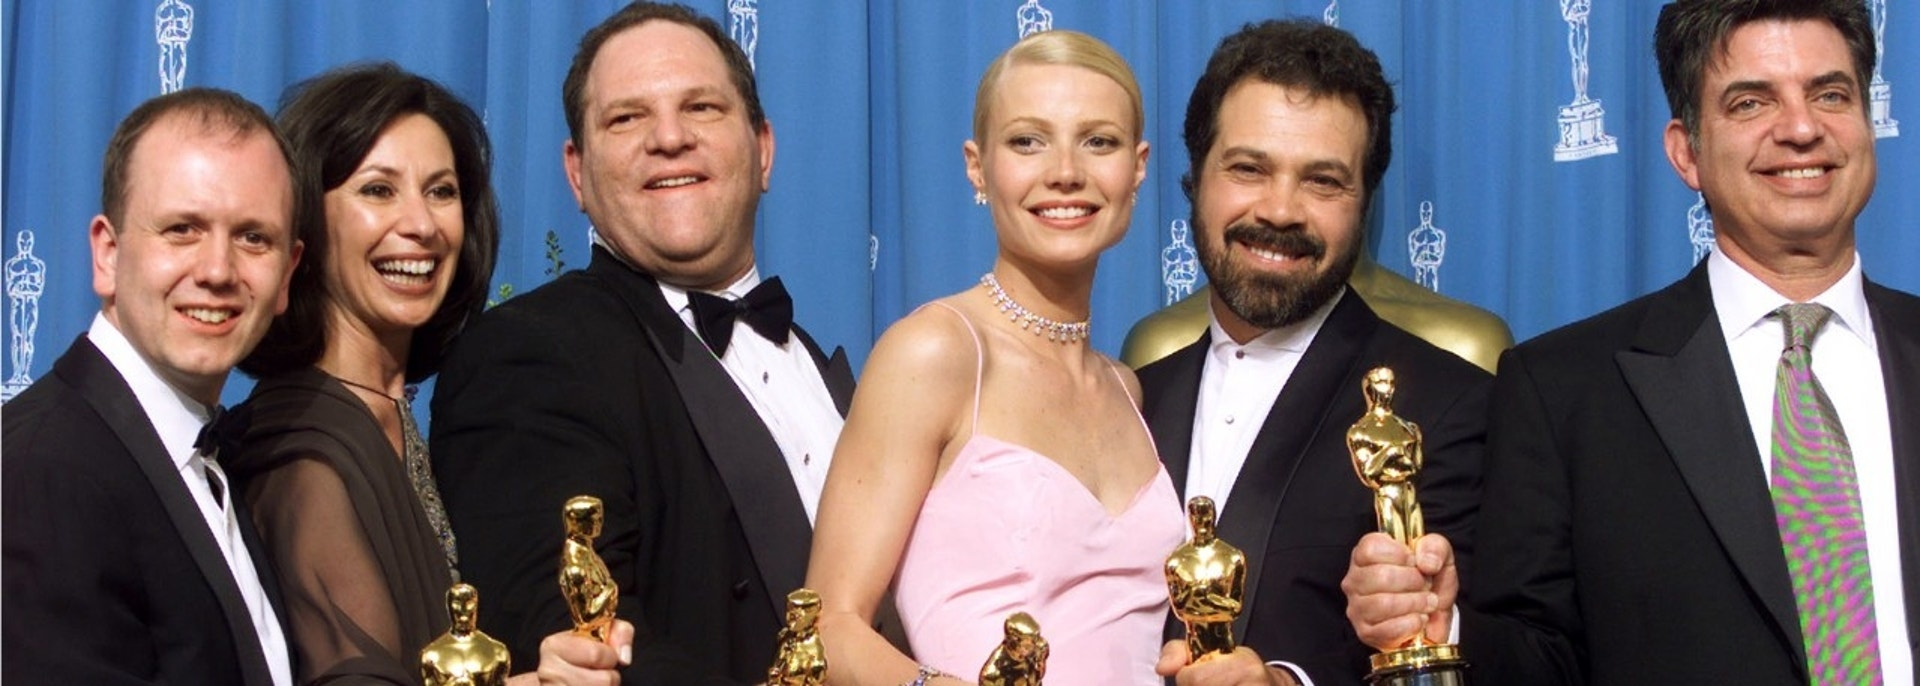 "The producers of the Miramax film ""Shakespeare in Love"" hold their Oscars with the film's star and Best Actress Gwyneth Paltrow, after their film won Best Picture at the 71st Annual Academy Awards ceremony March 21 at the Dorothy Chandler Pavilion in Los Angeles. From left are David Parfitt, Donna Gigliotti, Harvey Weinstein, Paltrow, Edward Zwick and Marc Norman. ""Shakespeare in Love"" won a total of seven Oscar awards.